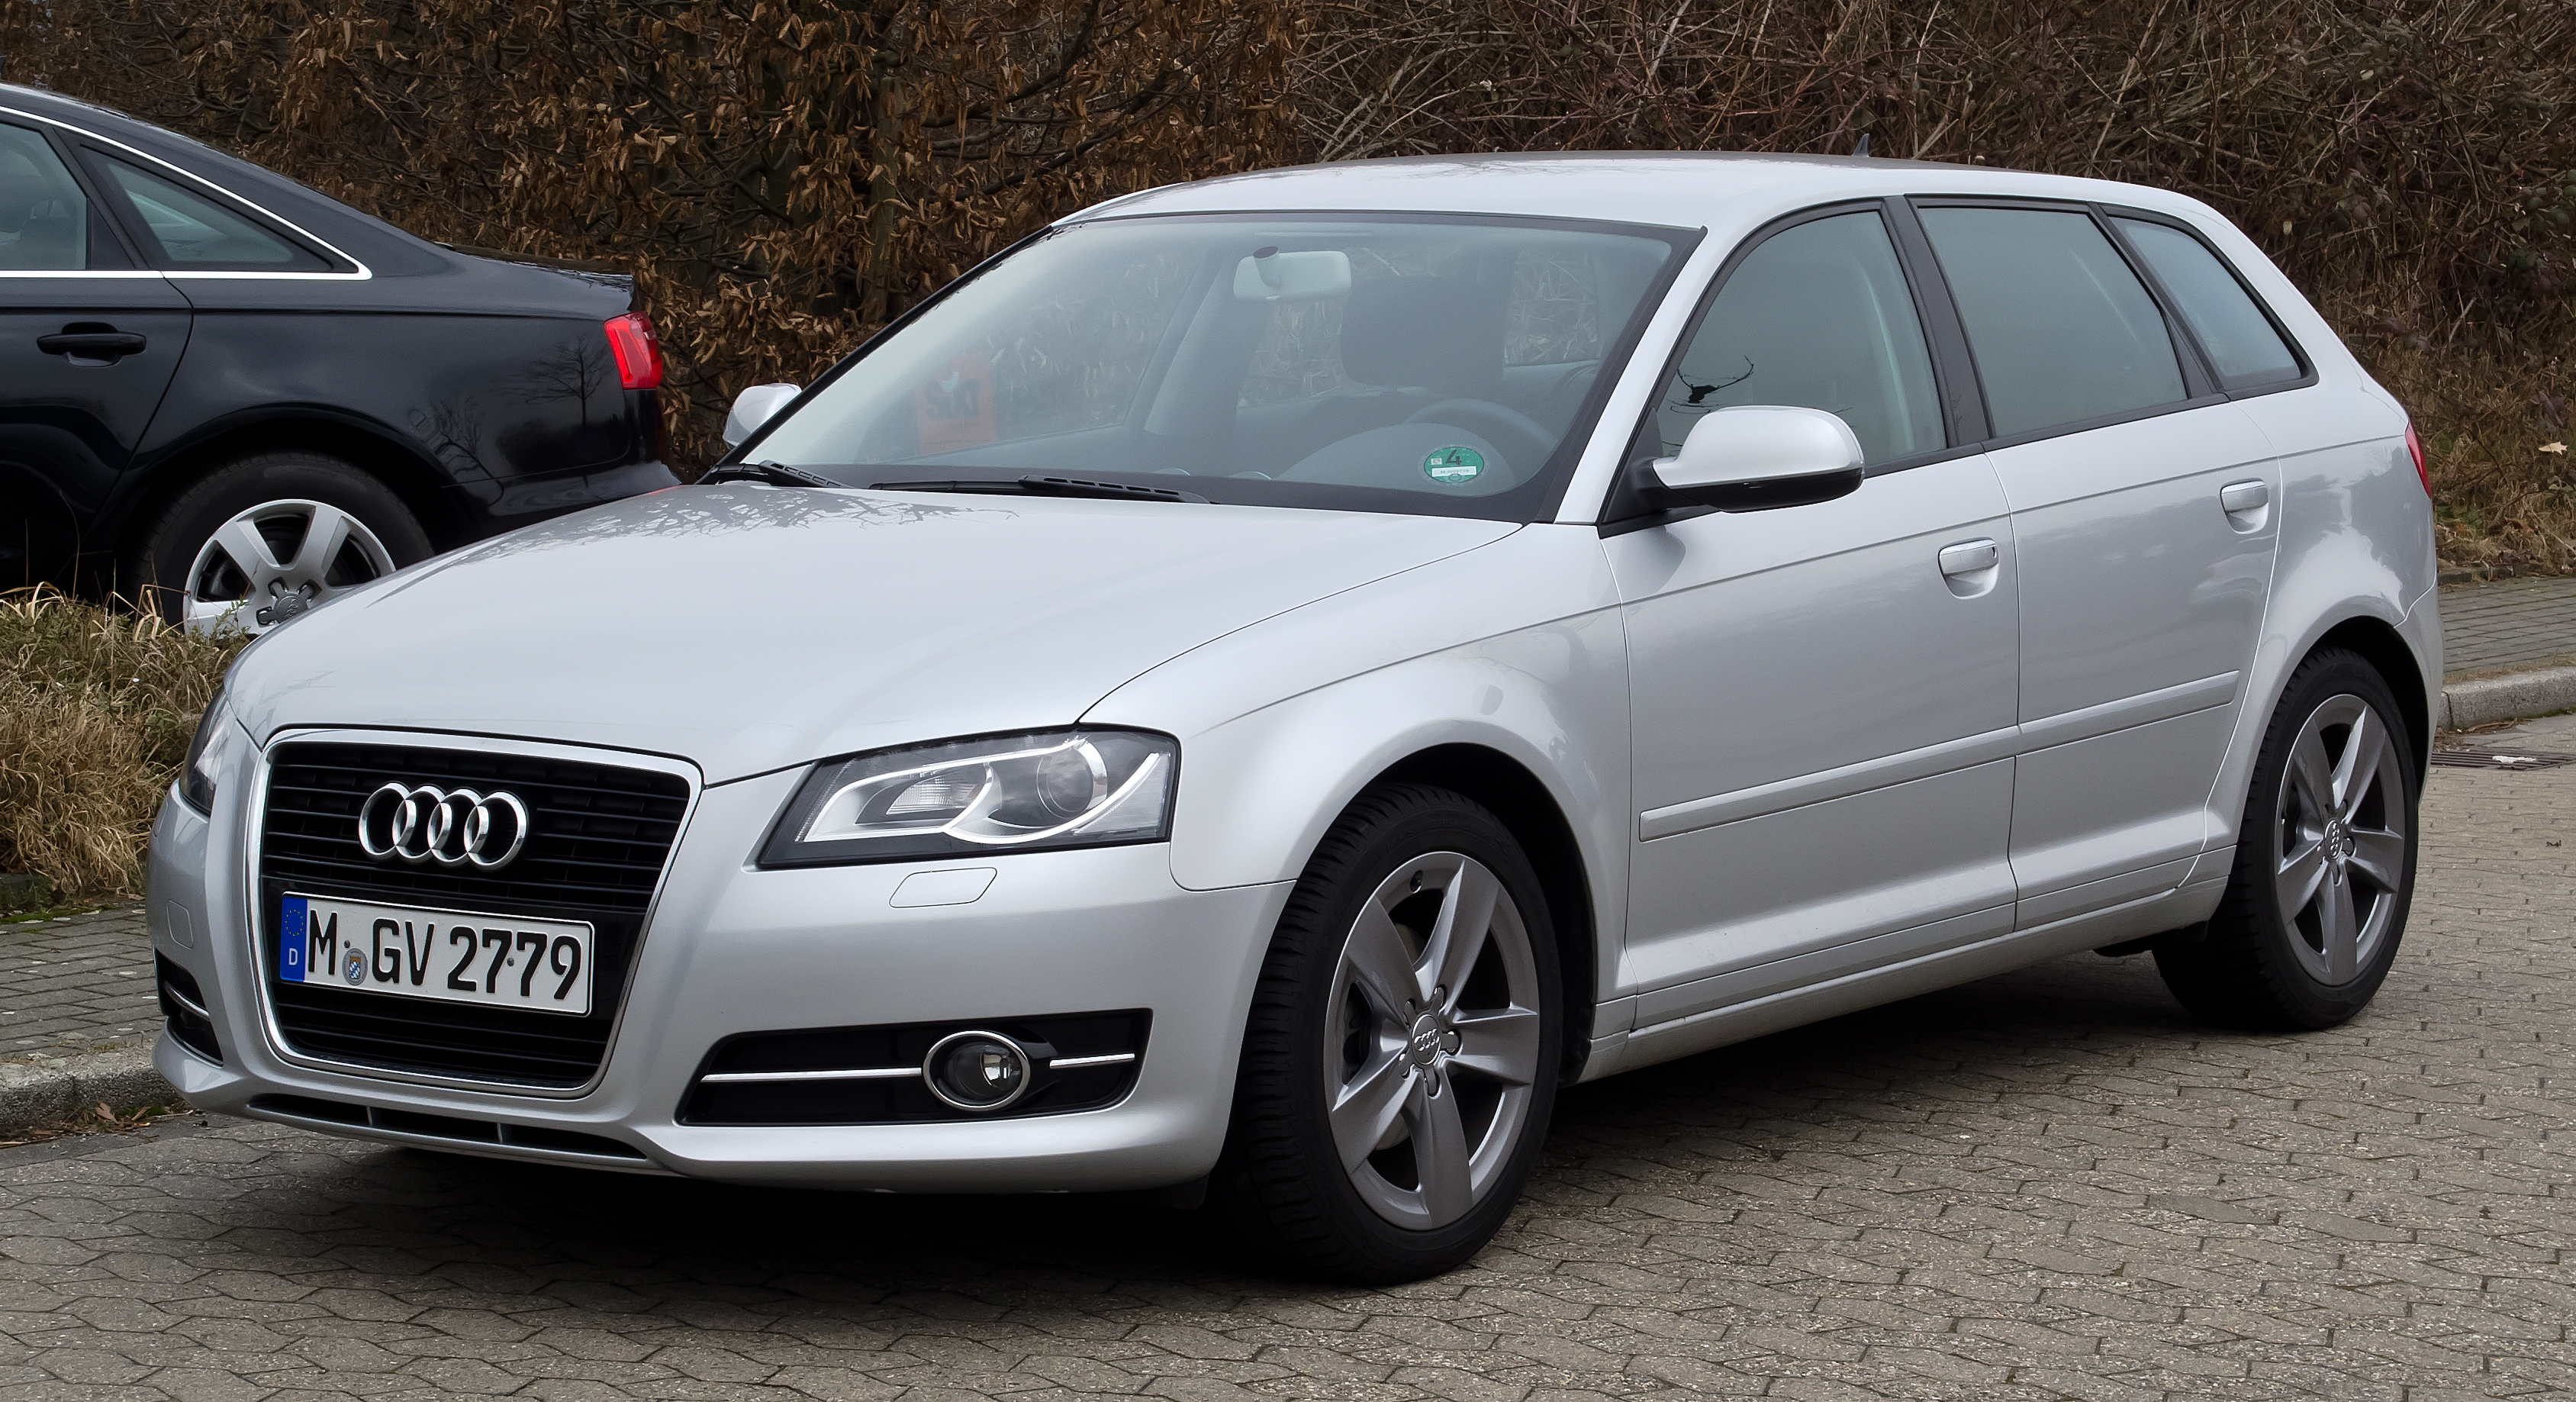 2010 Audi A3 sportback (8p) - pictures, information and ...